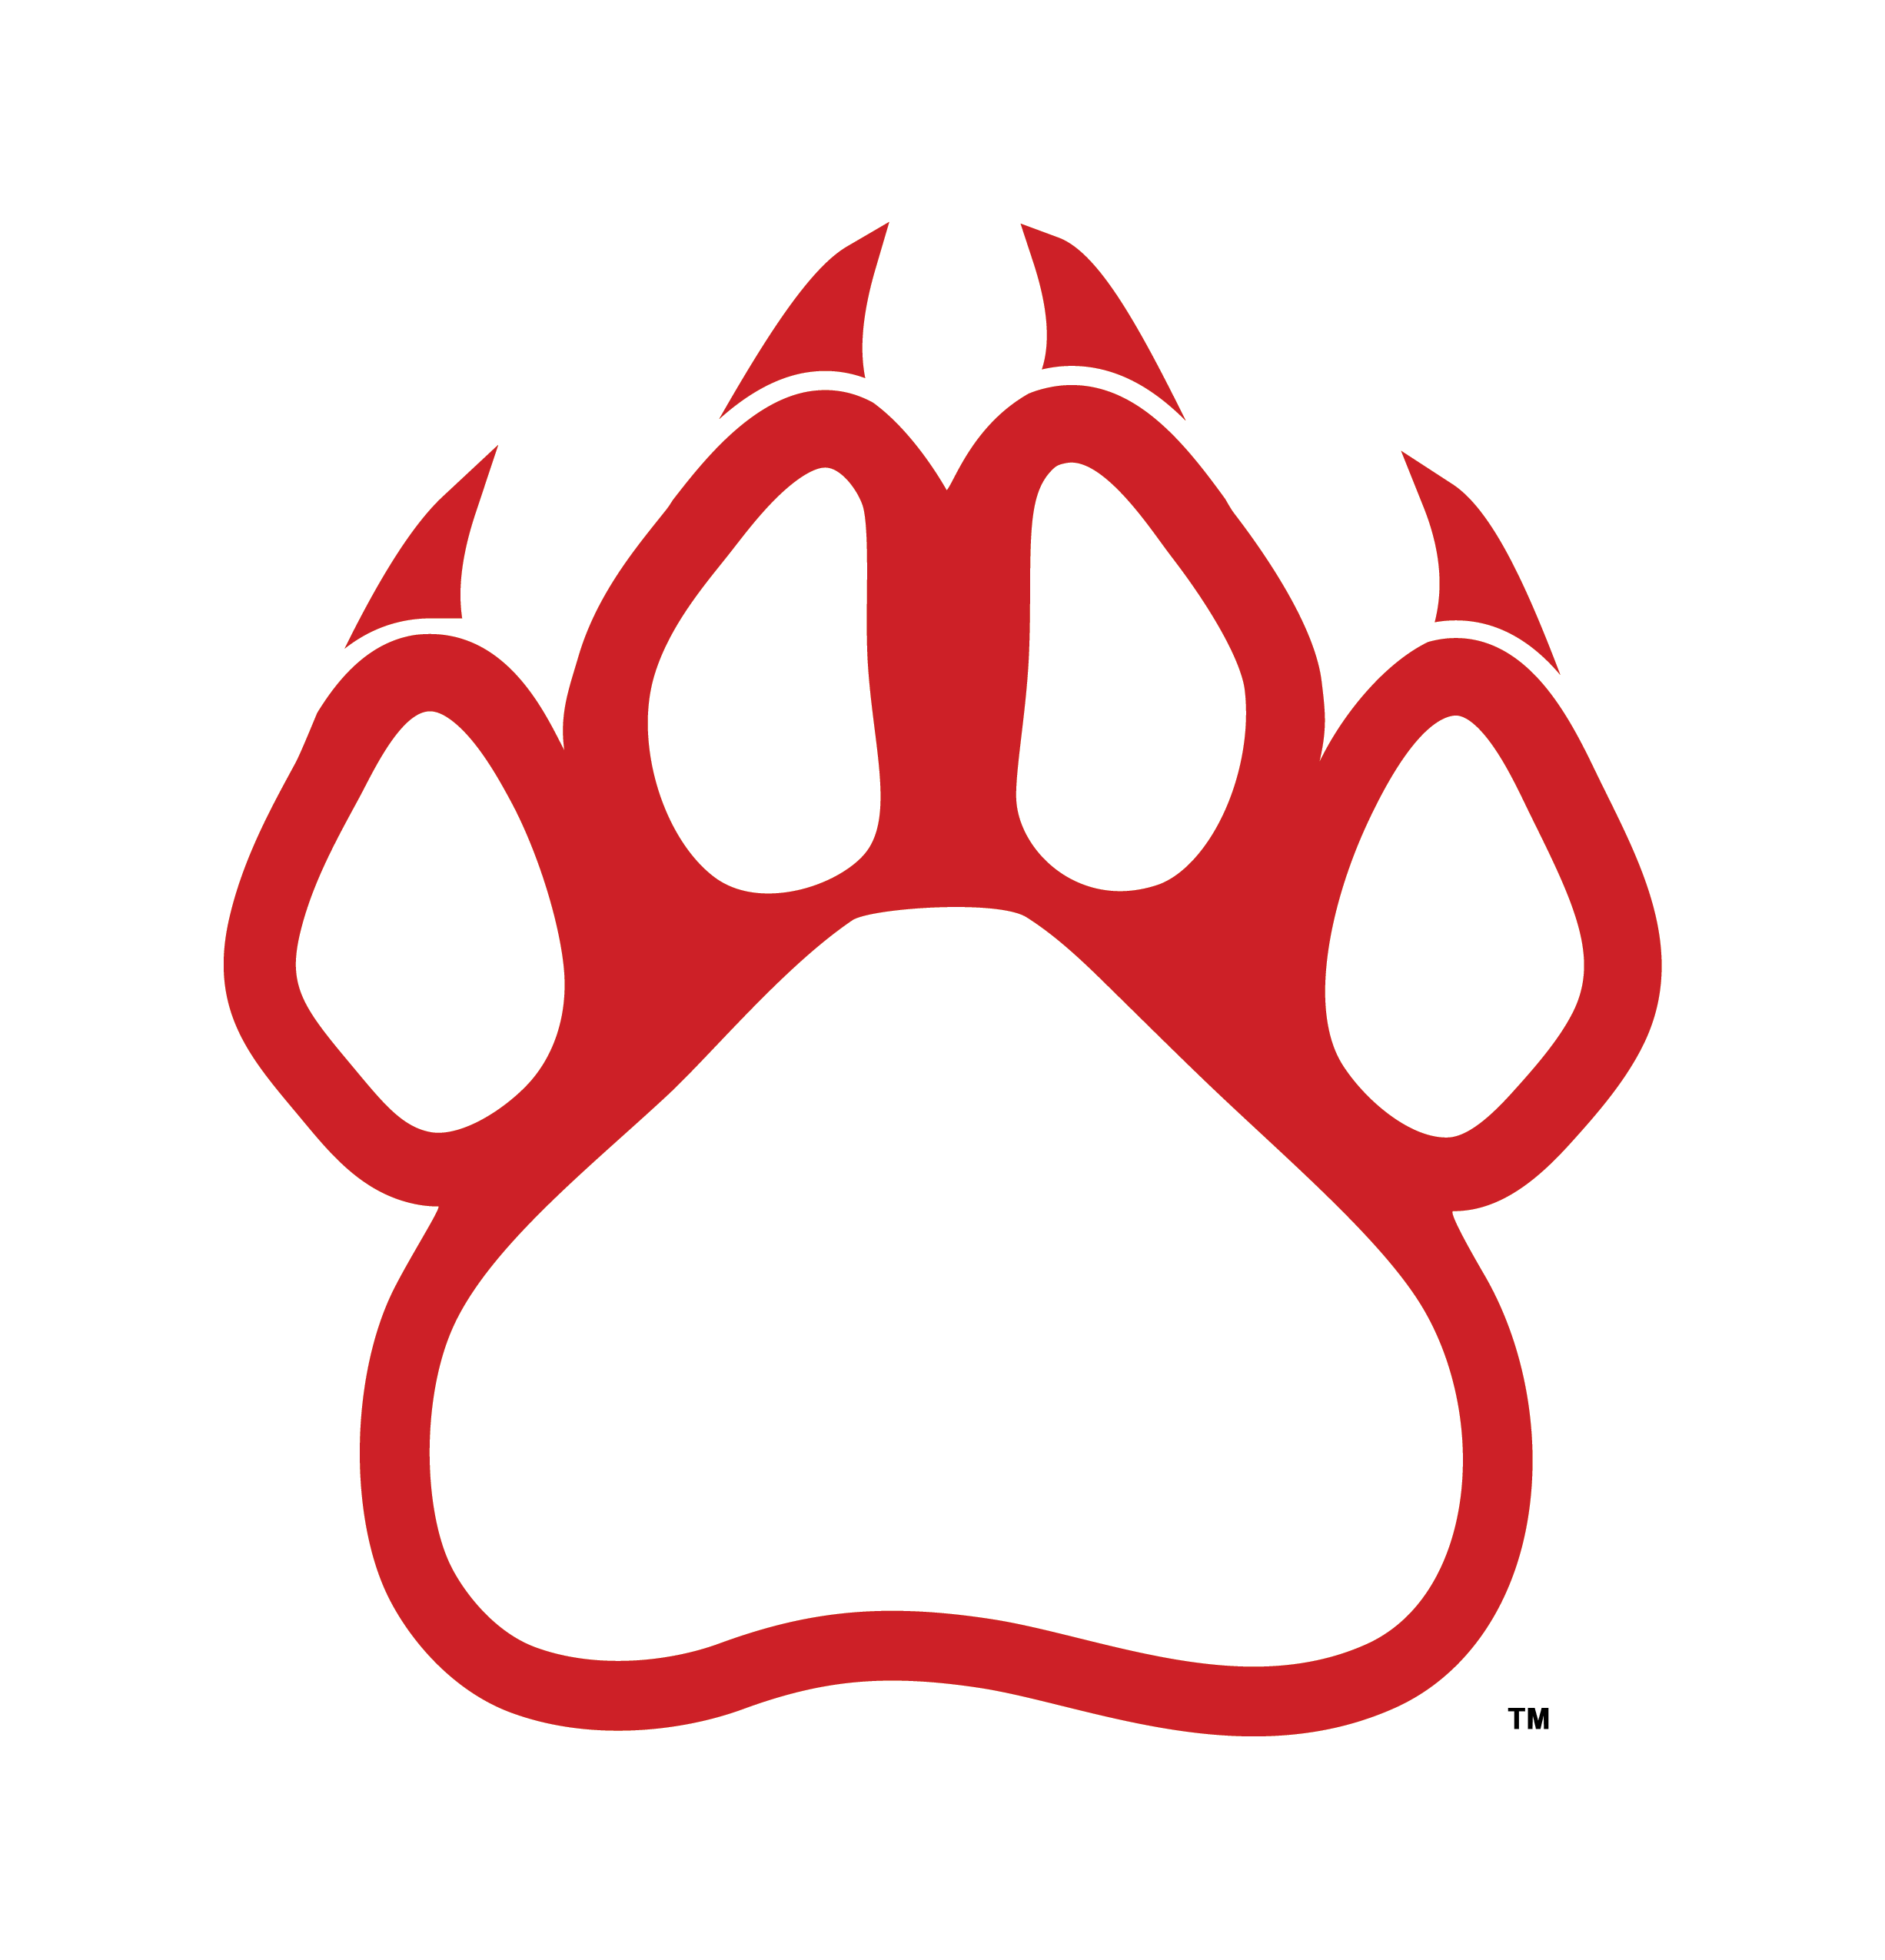 Bobcat clipart bulldog Paw Panther Cliparts Red Zone